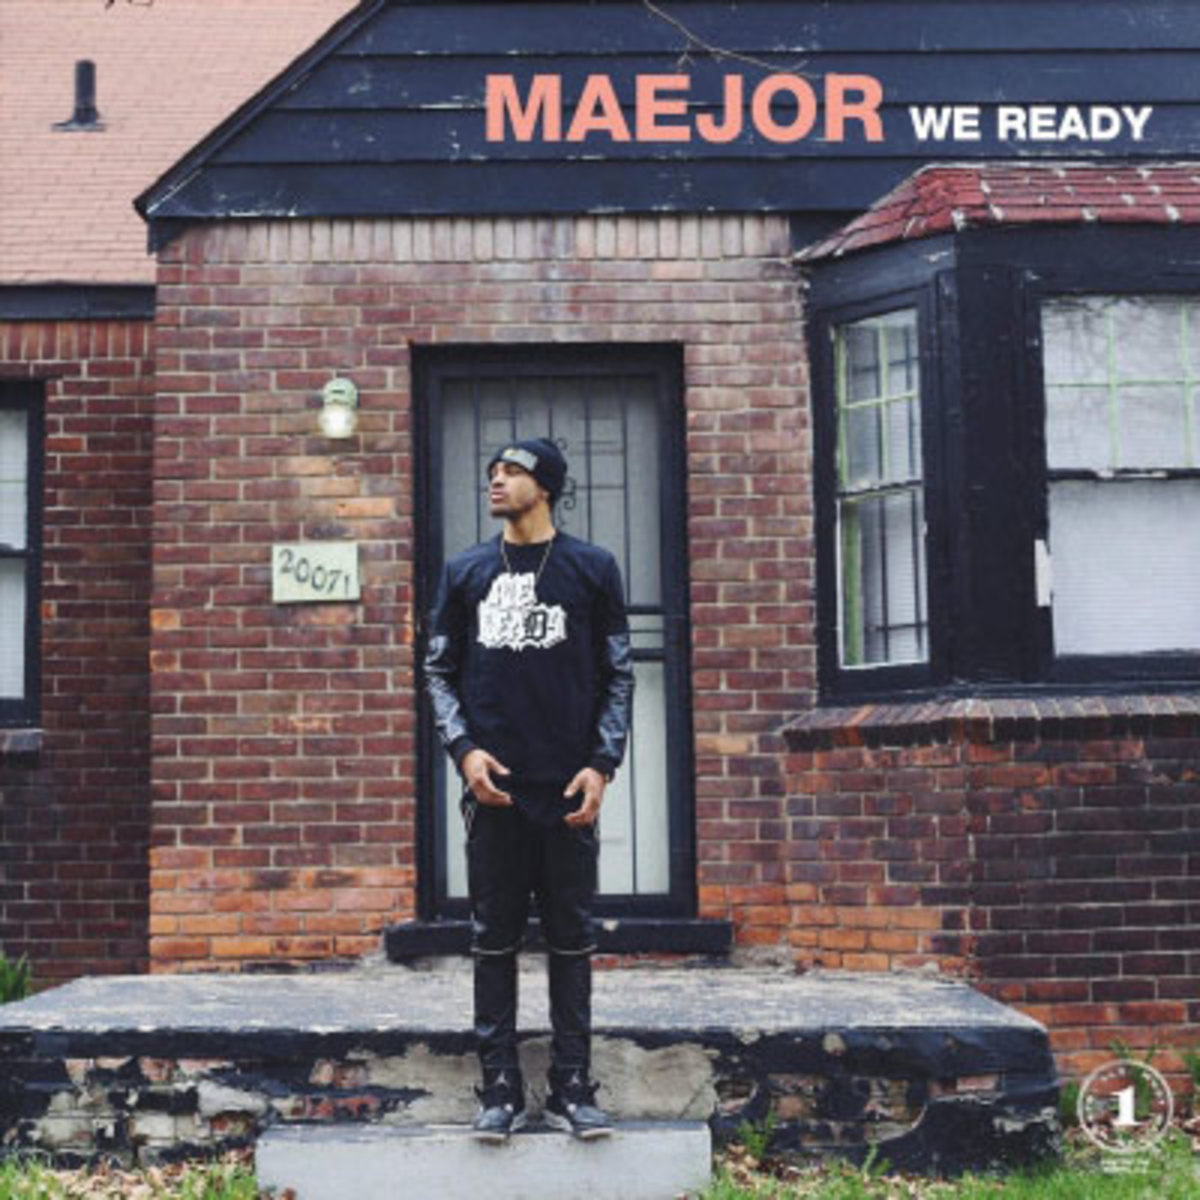 maejor-we-ready.jpg